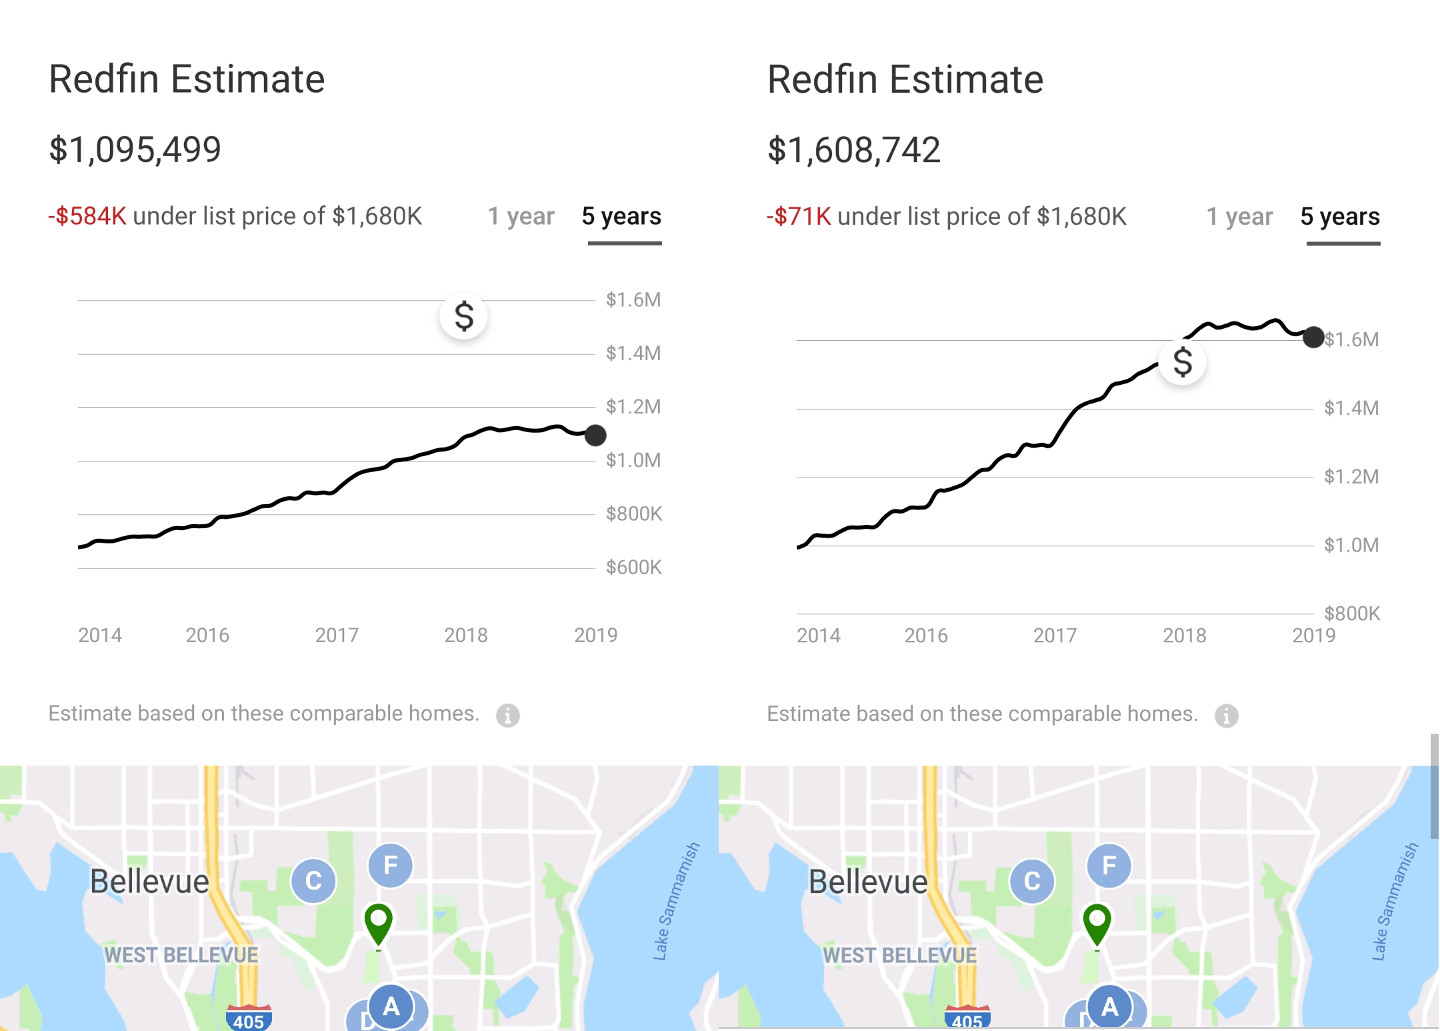 Redfin Estimate at $1,095,499 on 09/27/2019 (left) vs. $1,608,742 on 09/28/2019 (right)